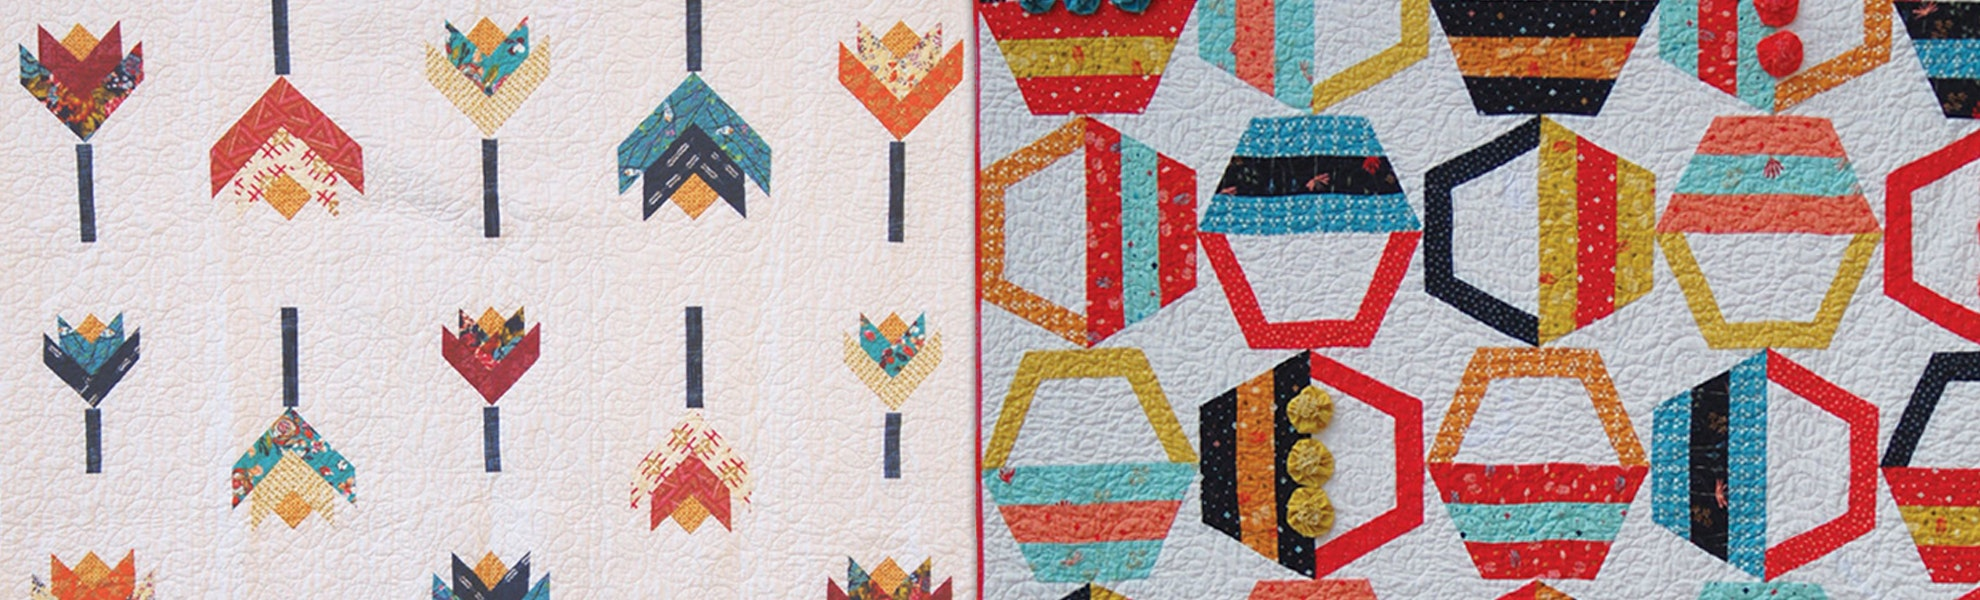 Abbey Lane Quilt Patterns